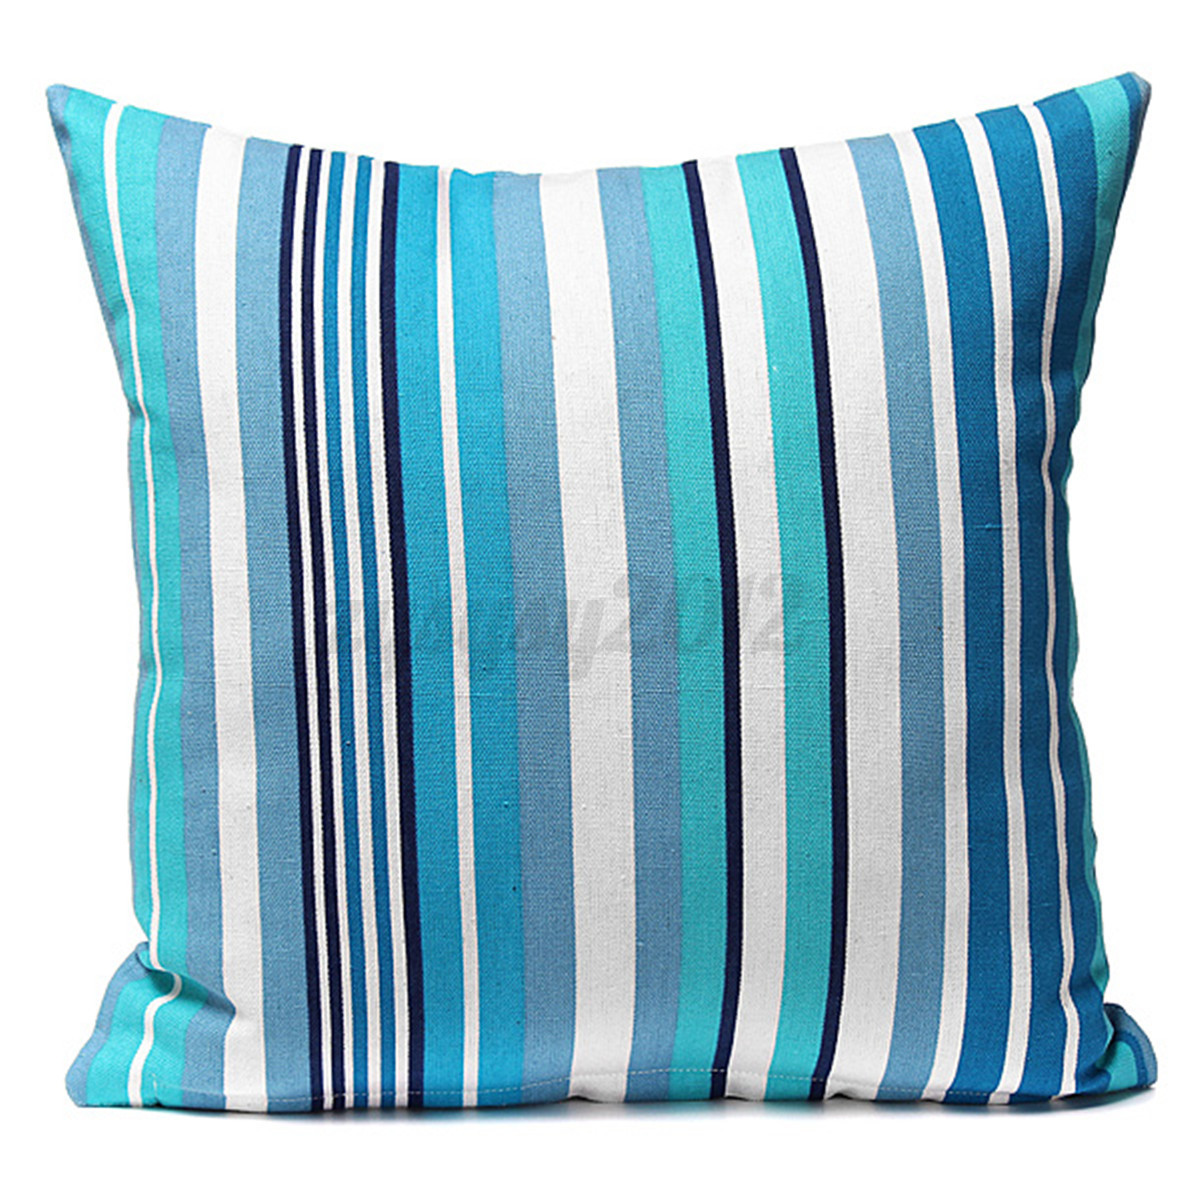 Colorful Luxury Flower Stripe Home Decor Square Throw Pillow Case Cushion Cover